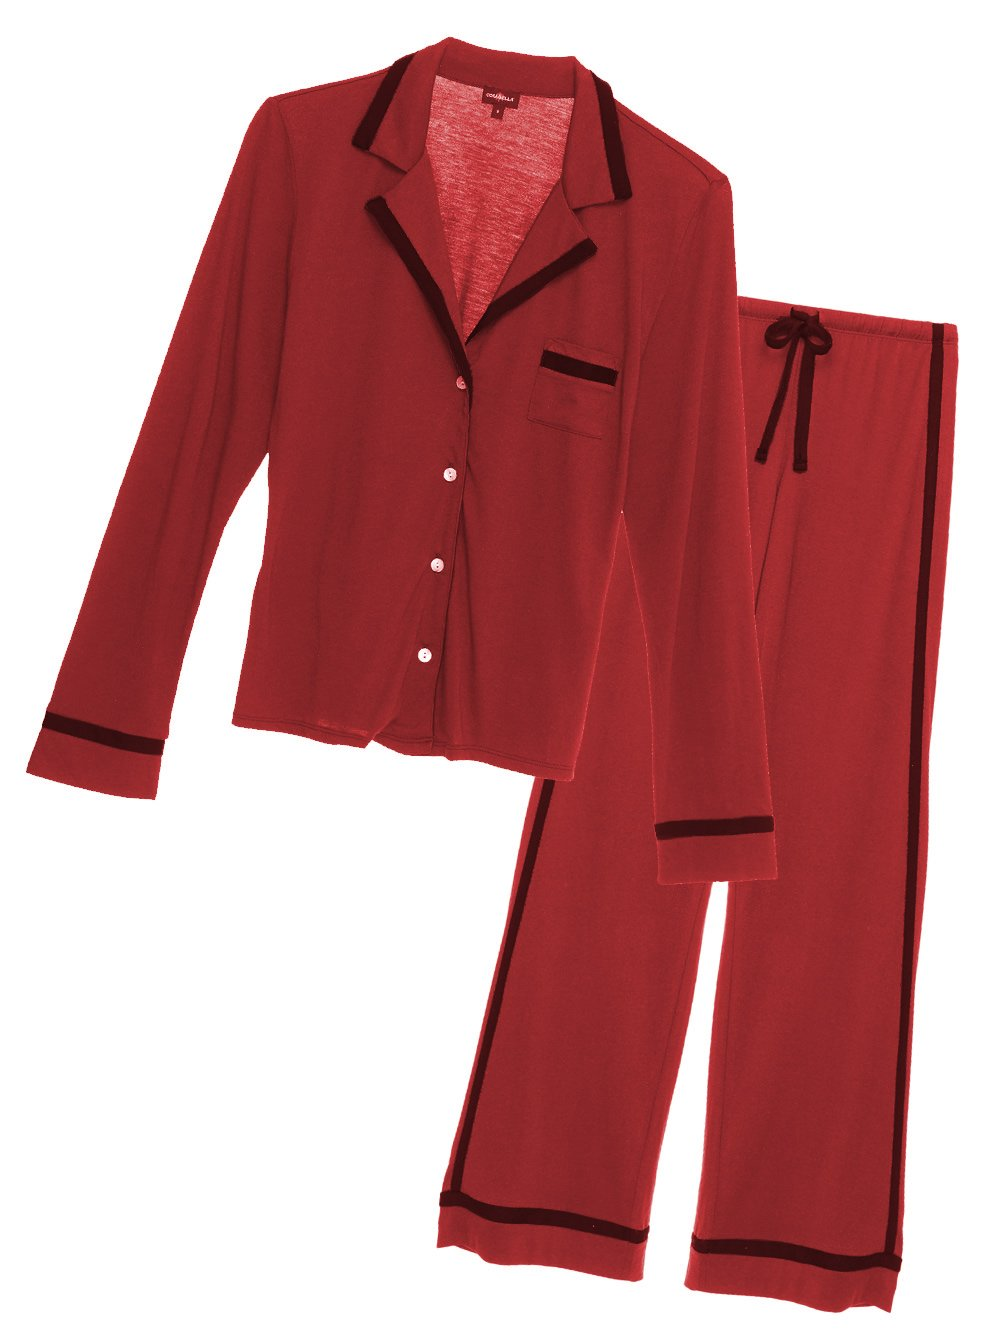 Cosabella Women's Bella Long-Sleeve Top and Pant Pajama Set, Medium, Brick Red/Black